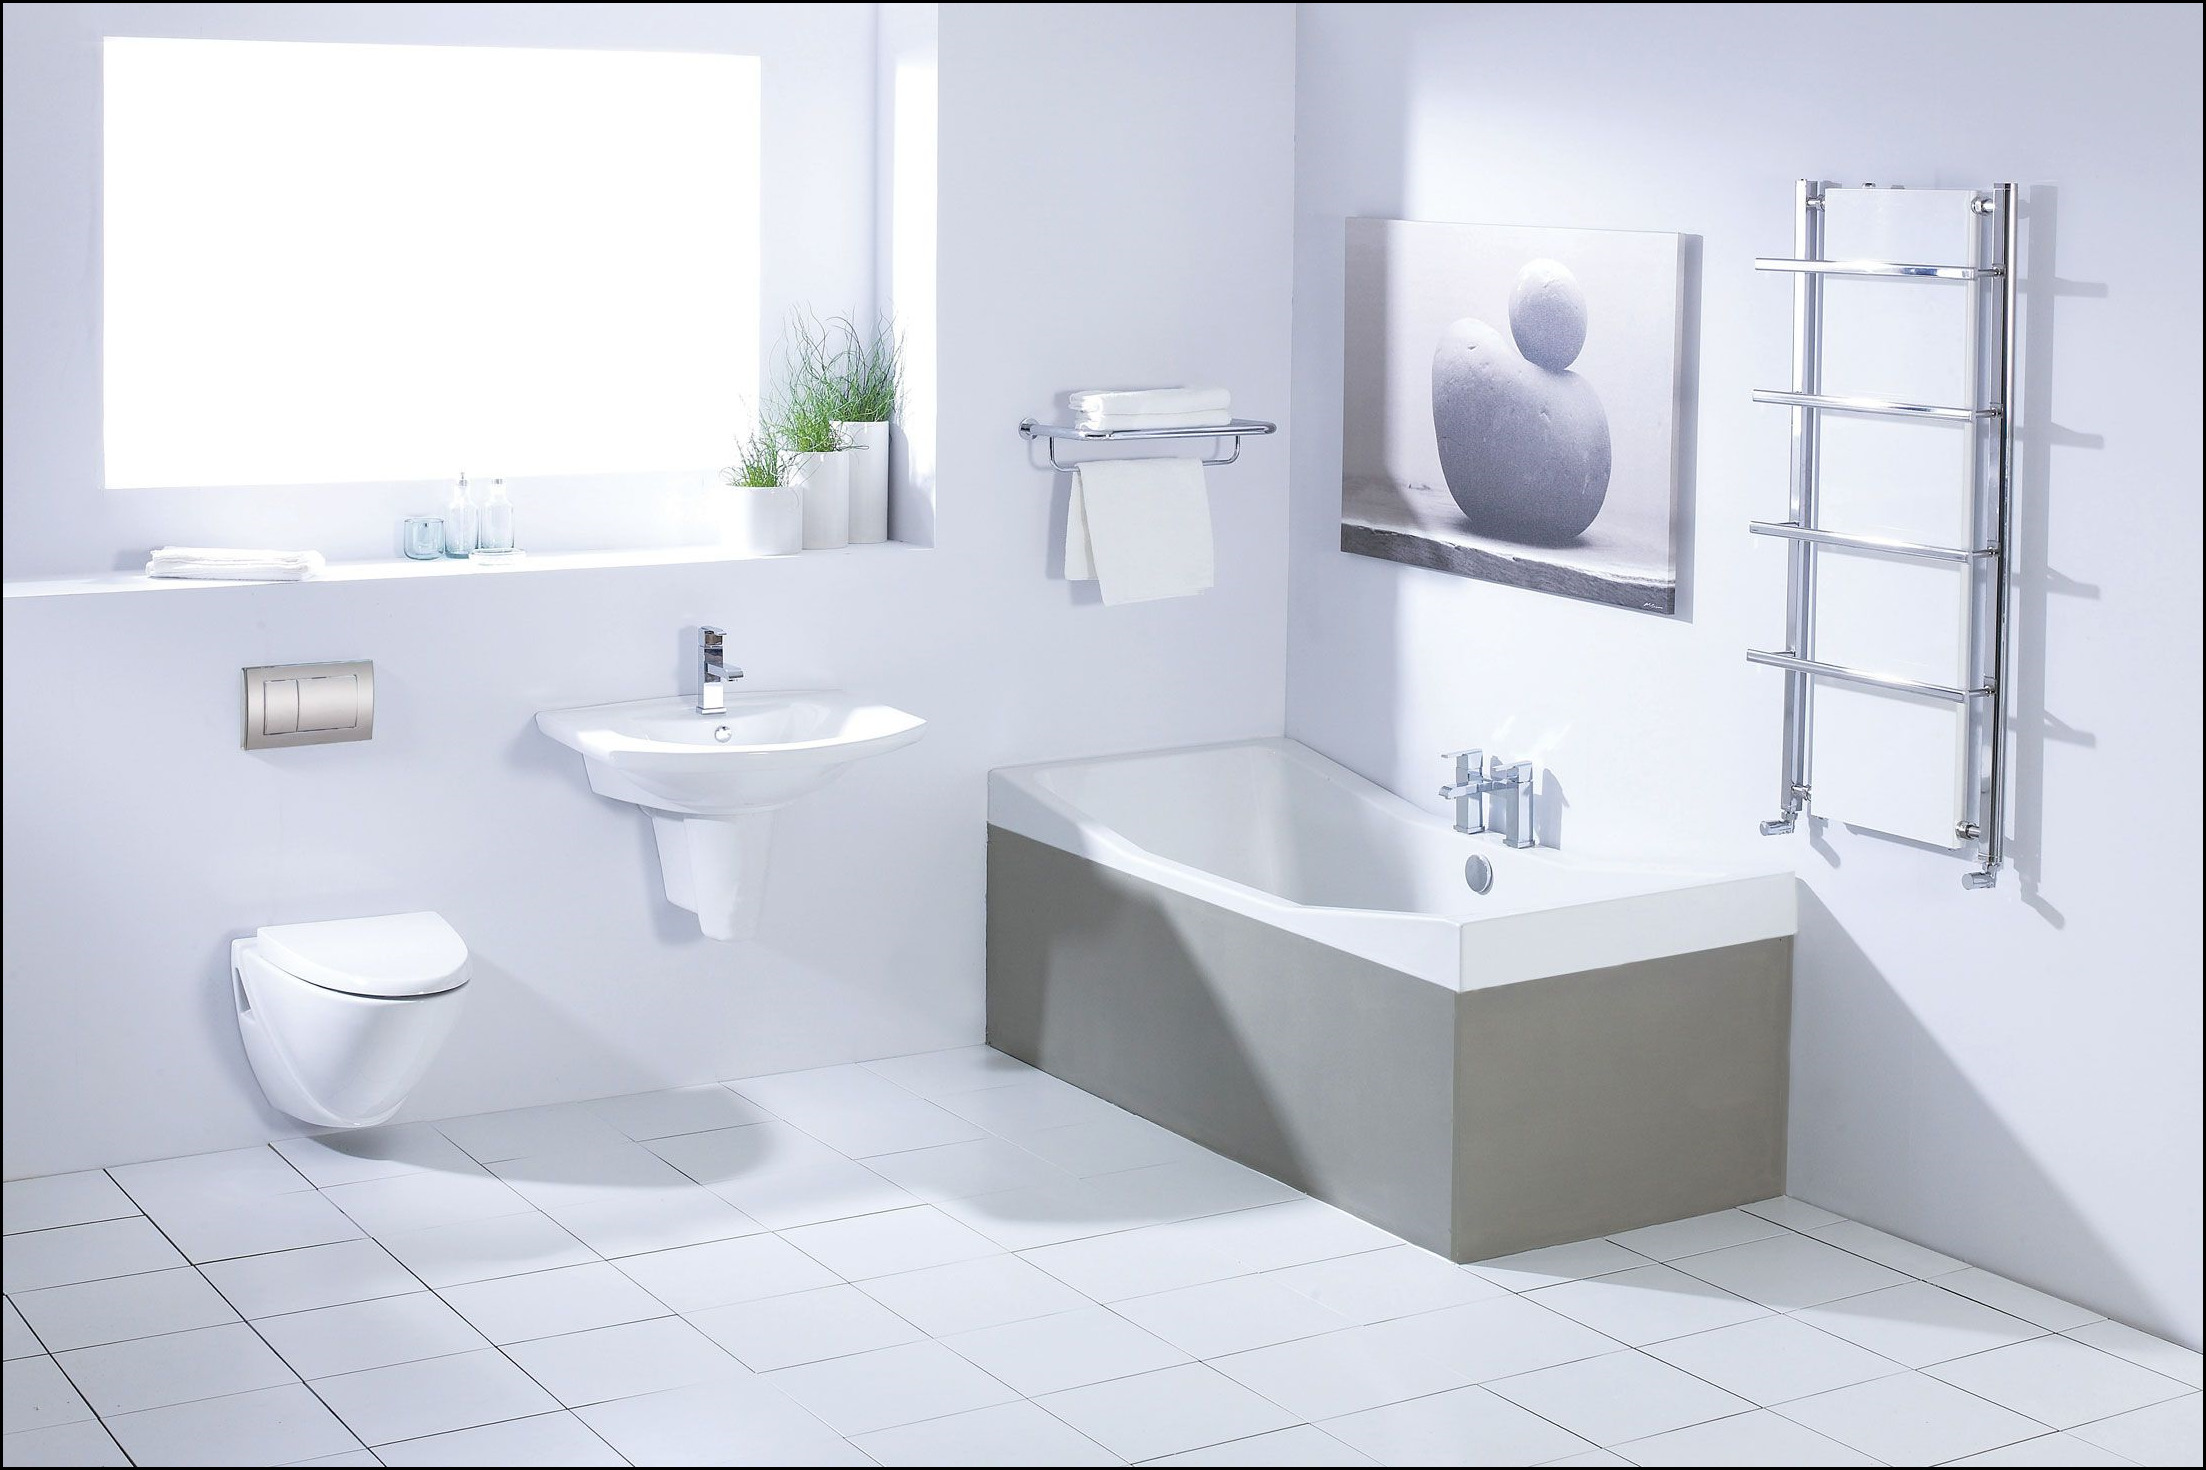 Bathroom design tool 11 for Tools needed for bathroom remodel